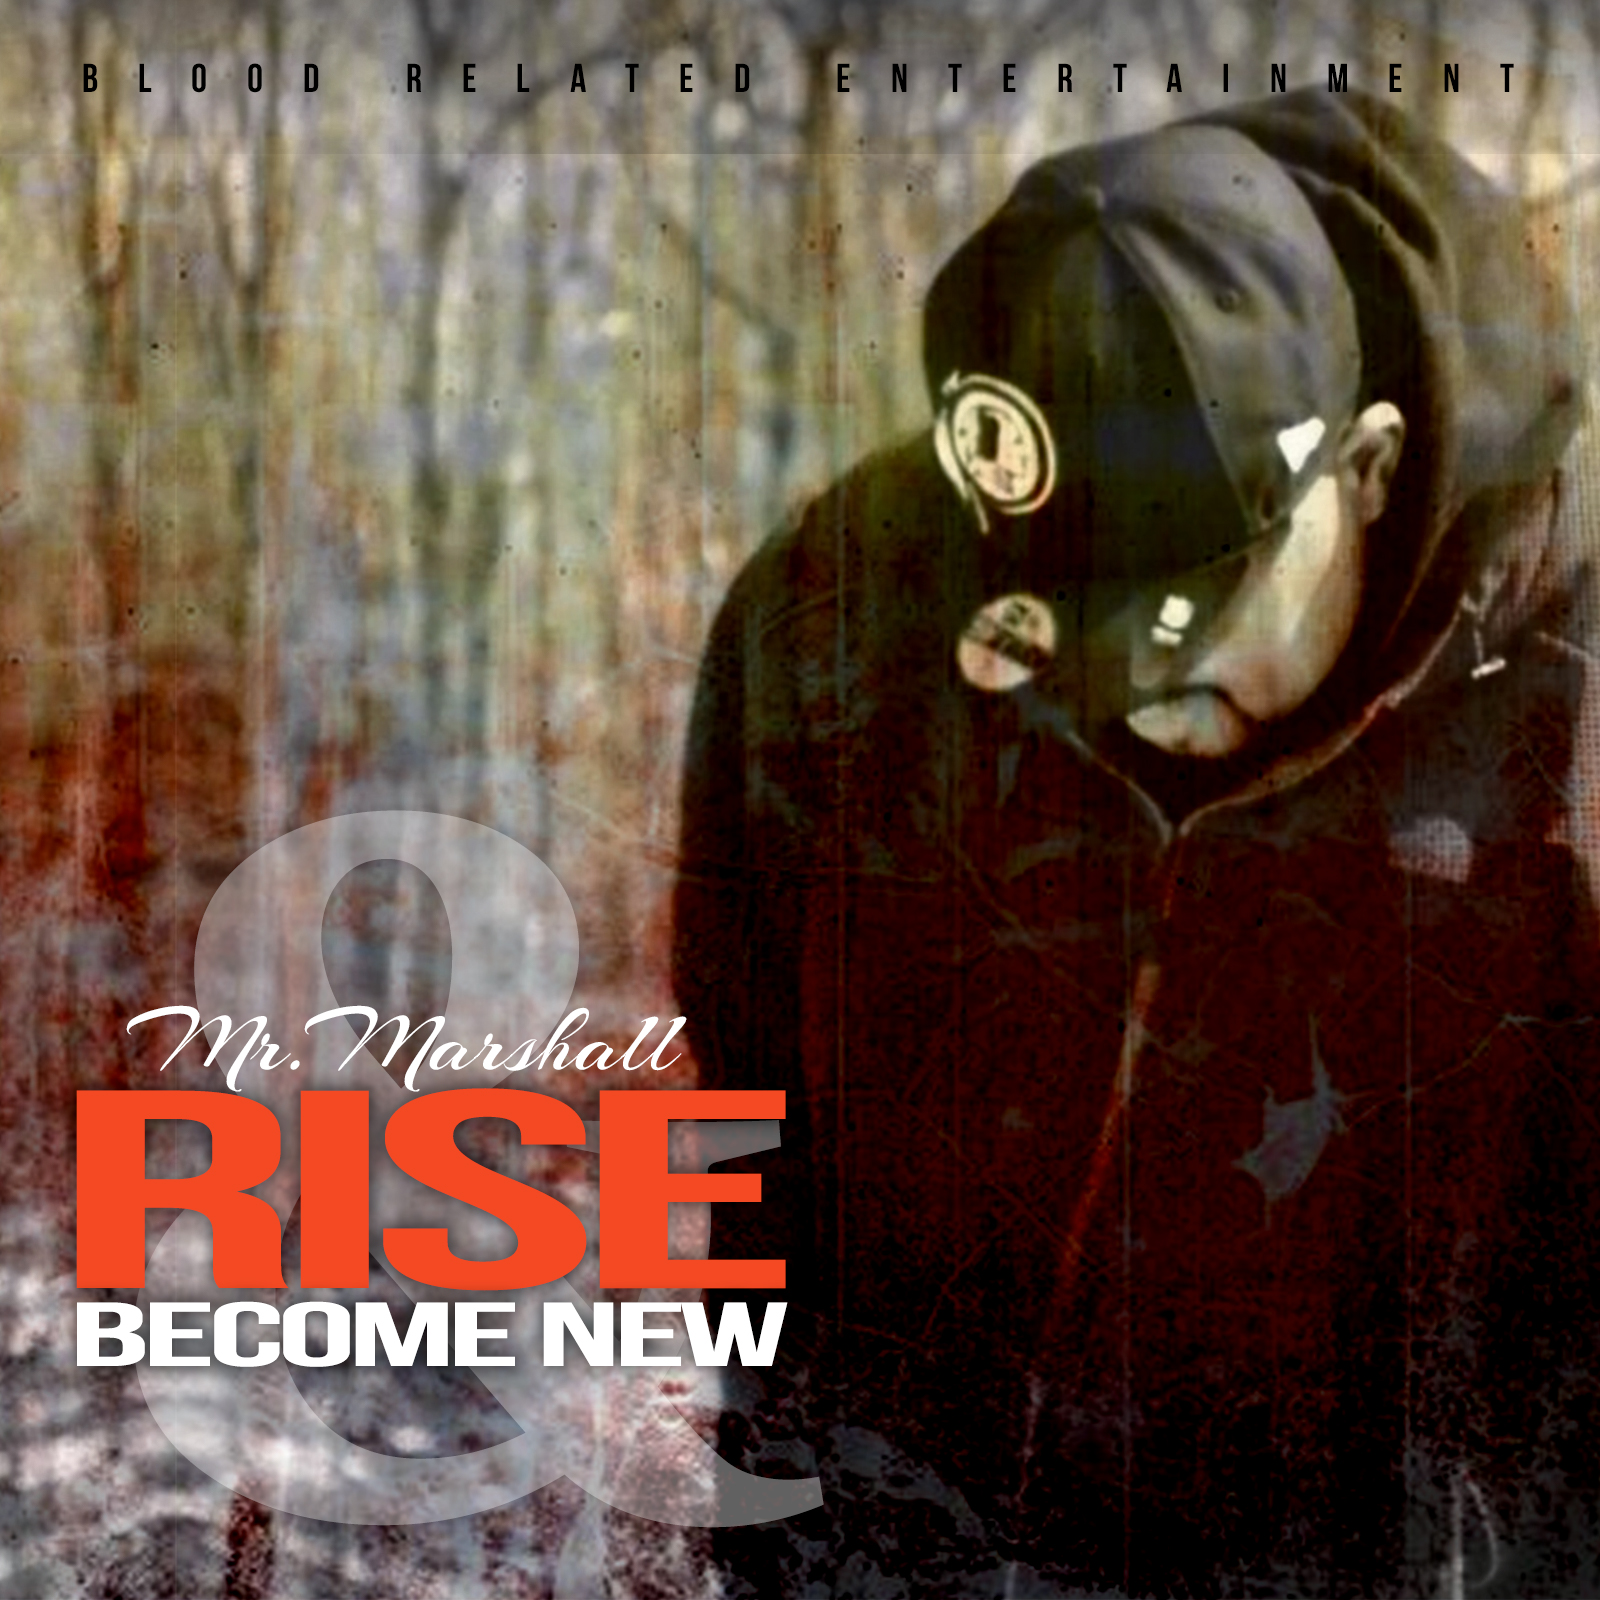 Rise & Become New by Mr. Marshall